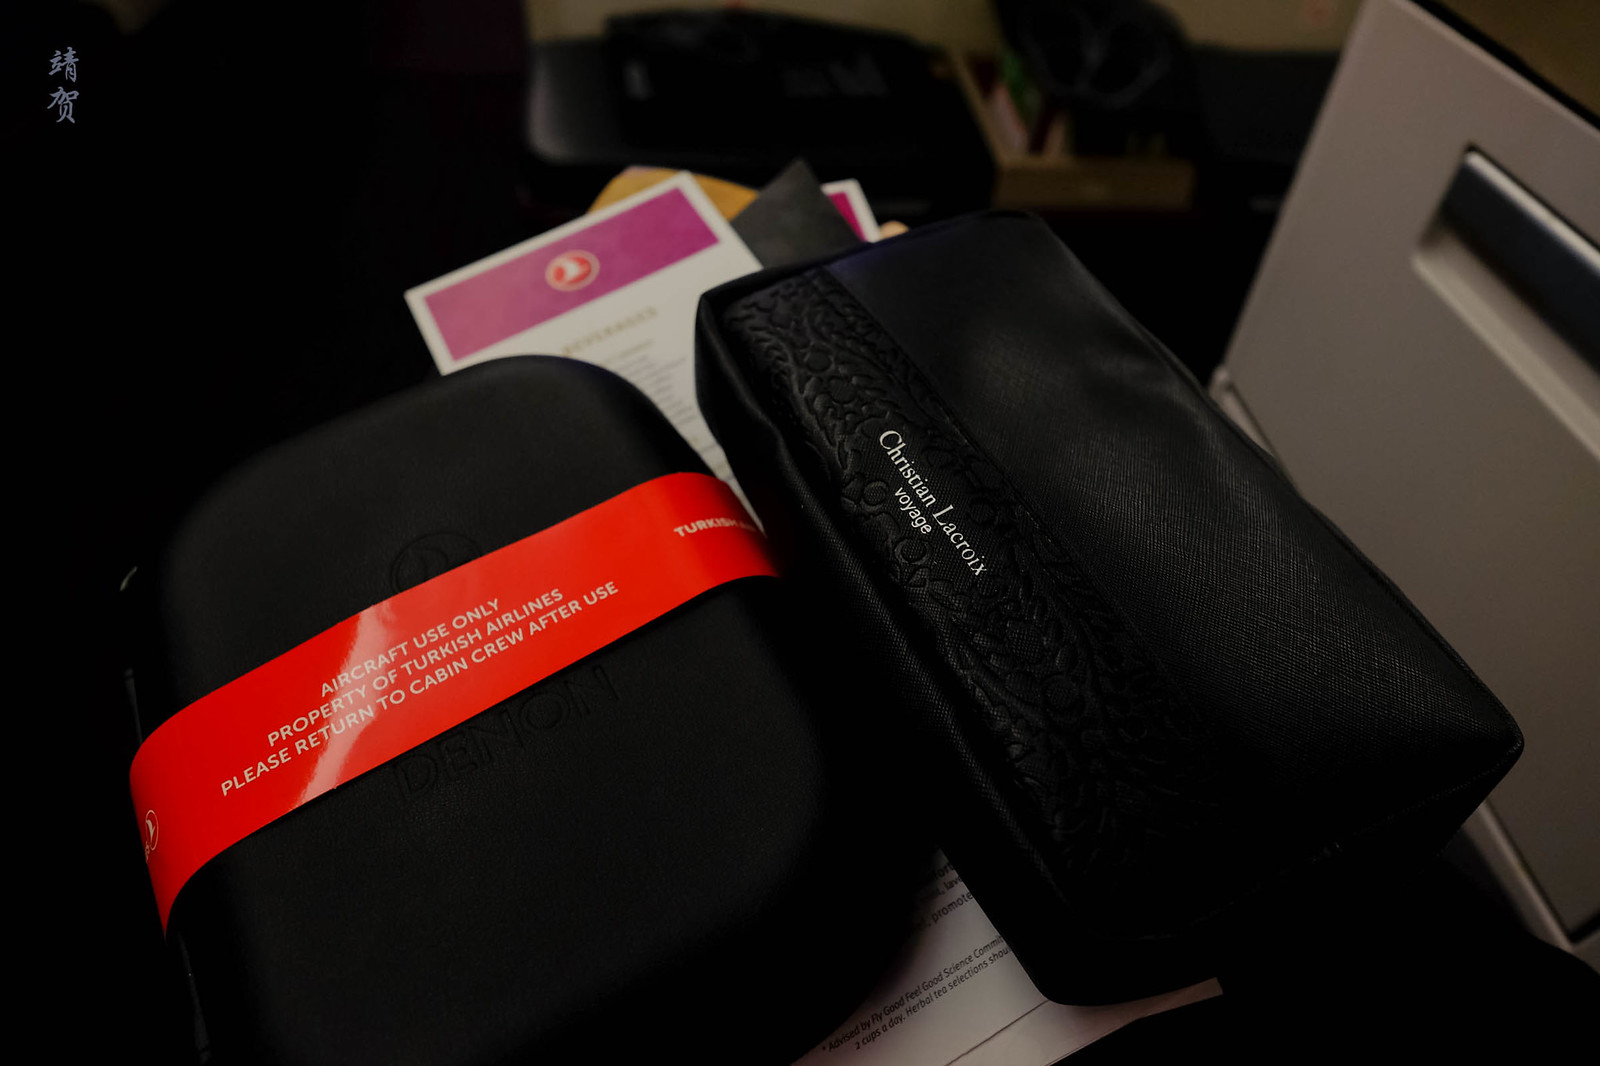 Headphone and amenity kit